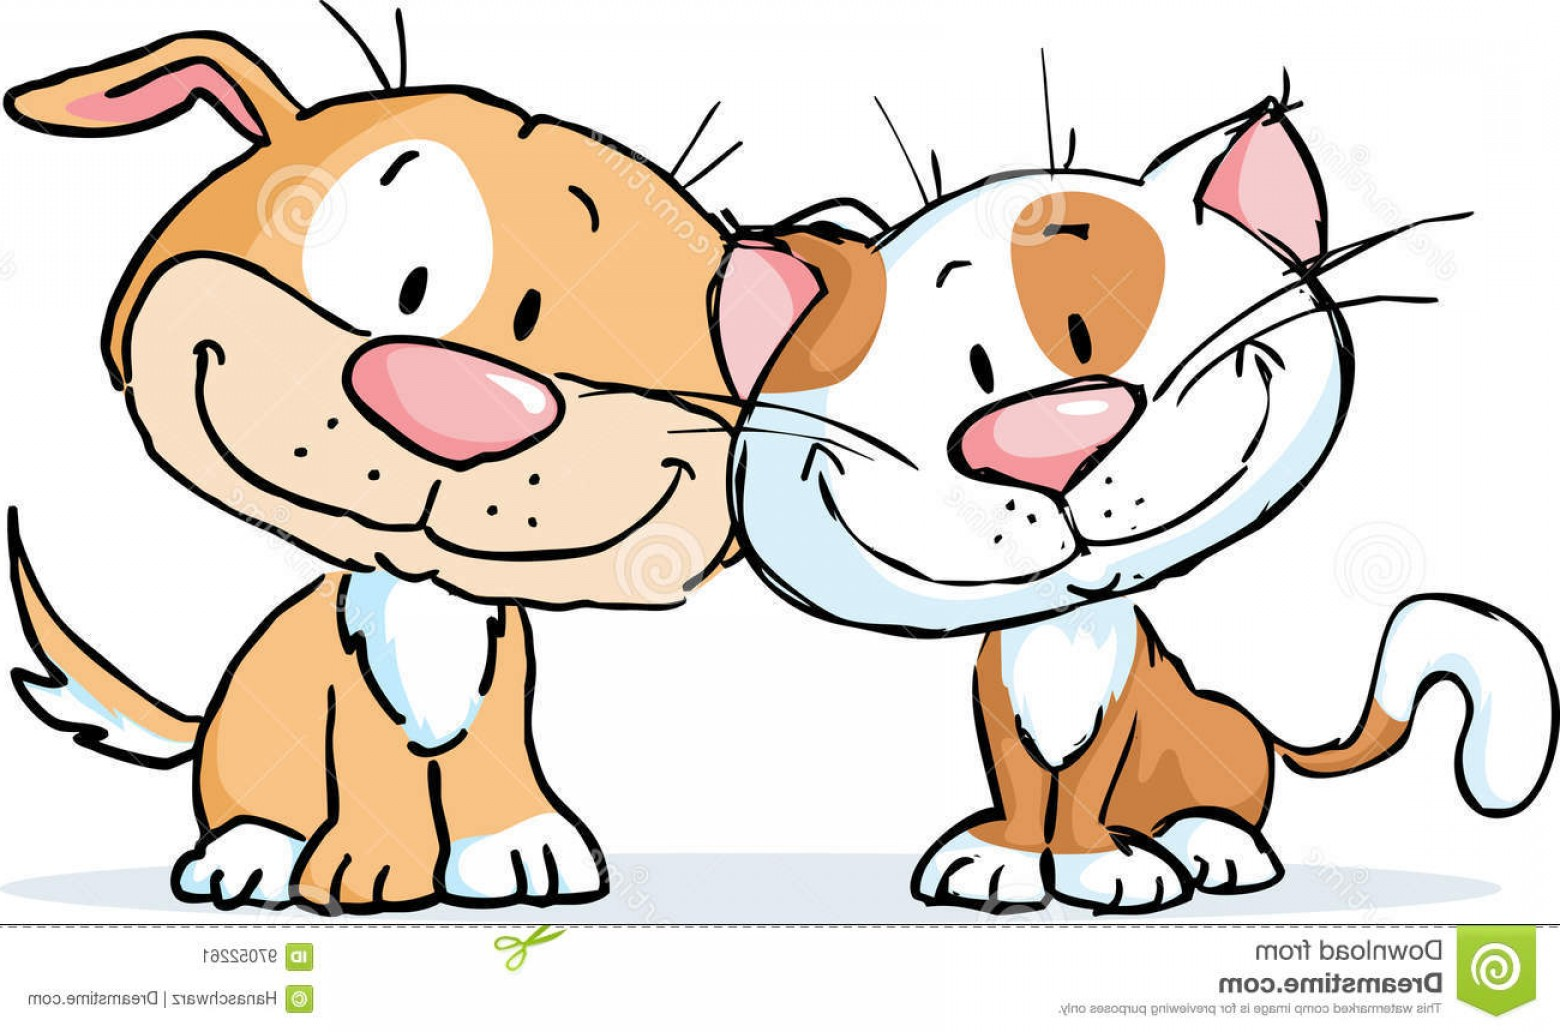 Dog And Cat Vector Illustration: Stock Illustration Cute Dog Cat Vector Illustration Cartoon Isolated White Image